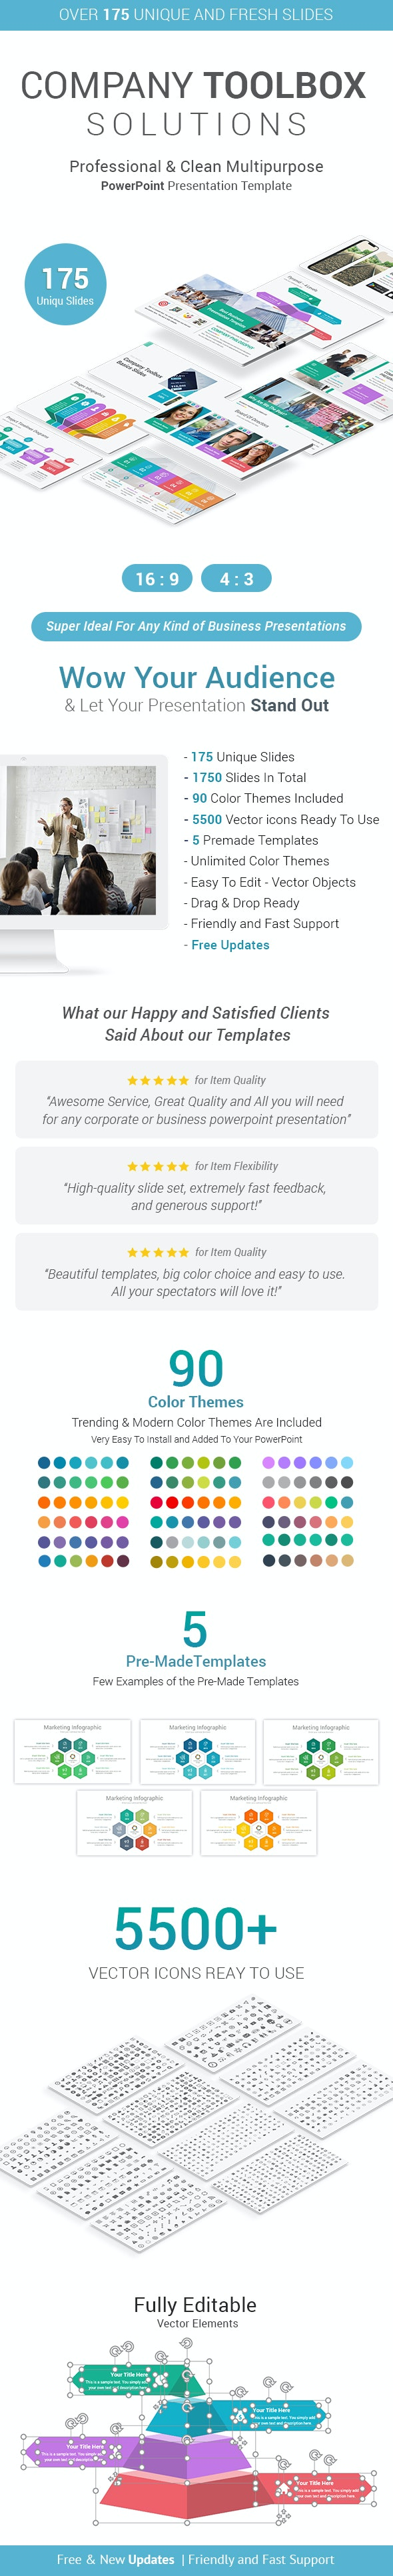 Company Toolbox PowerPoint Presentation Template - Business PowerPoint Templates